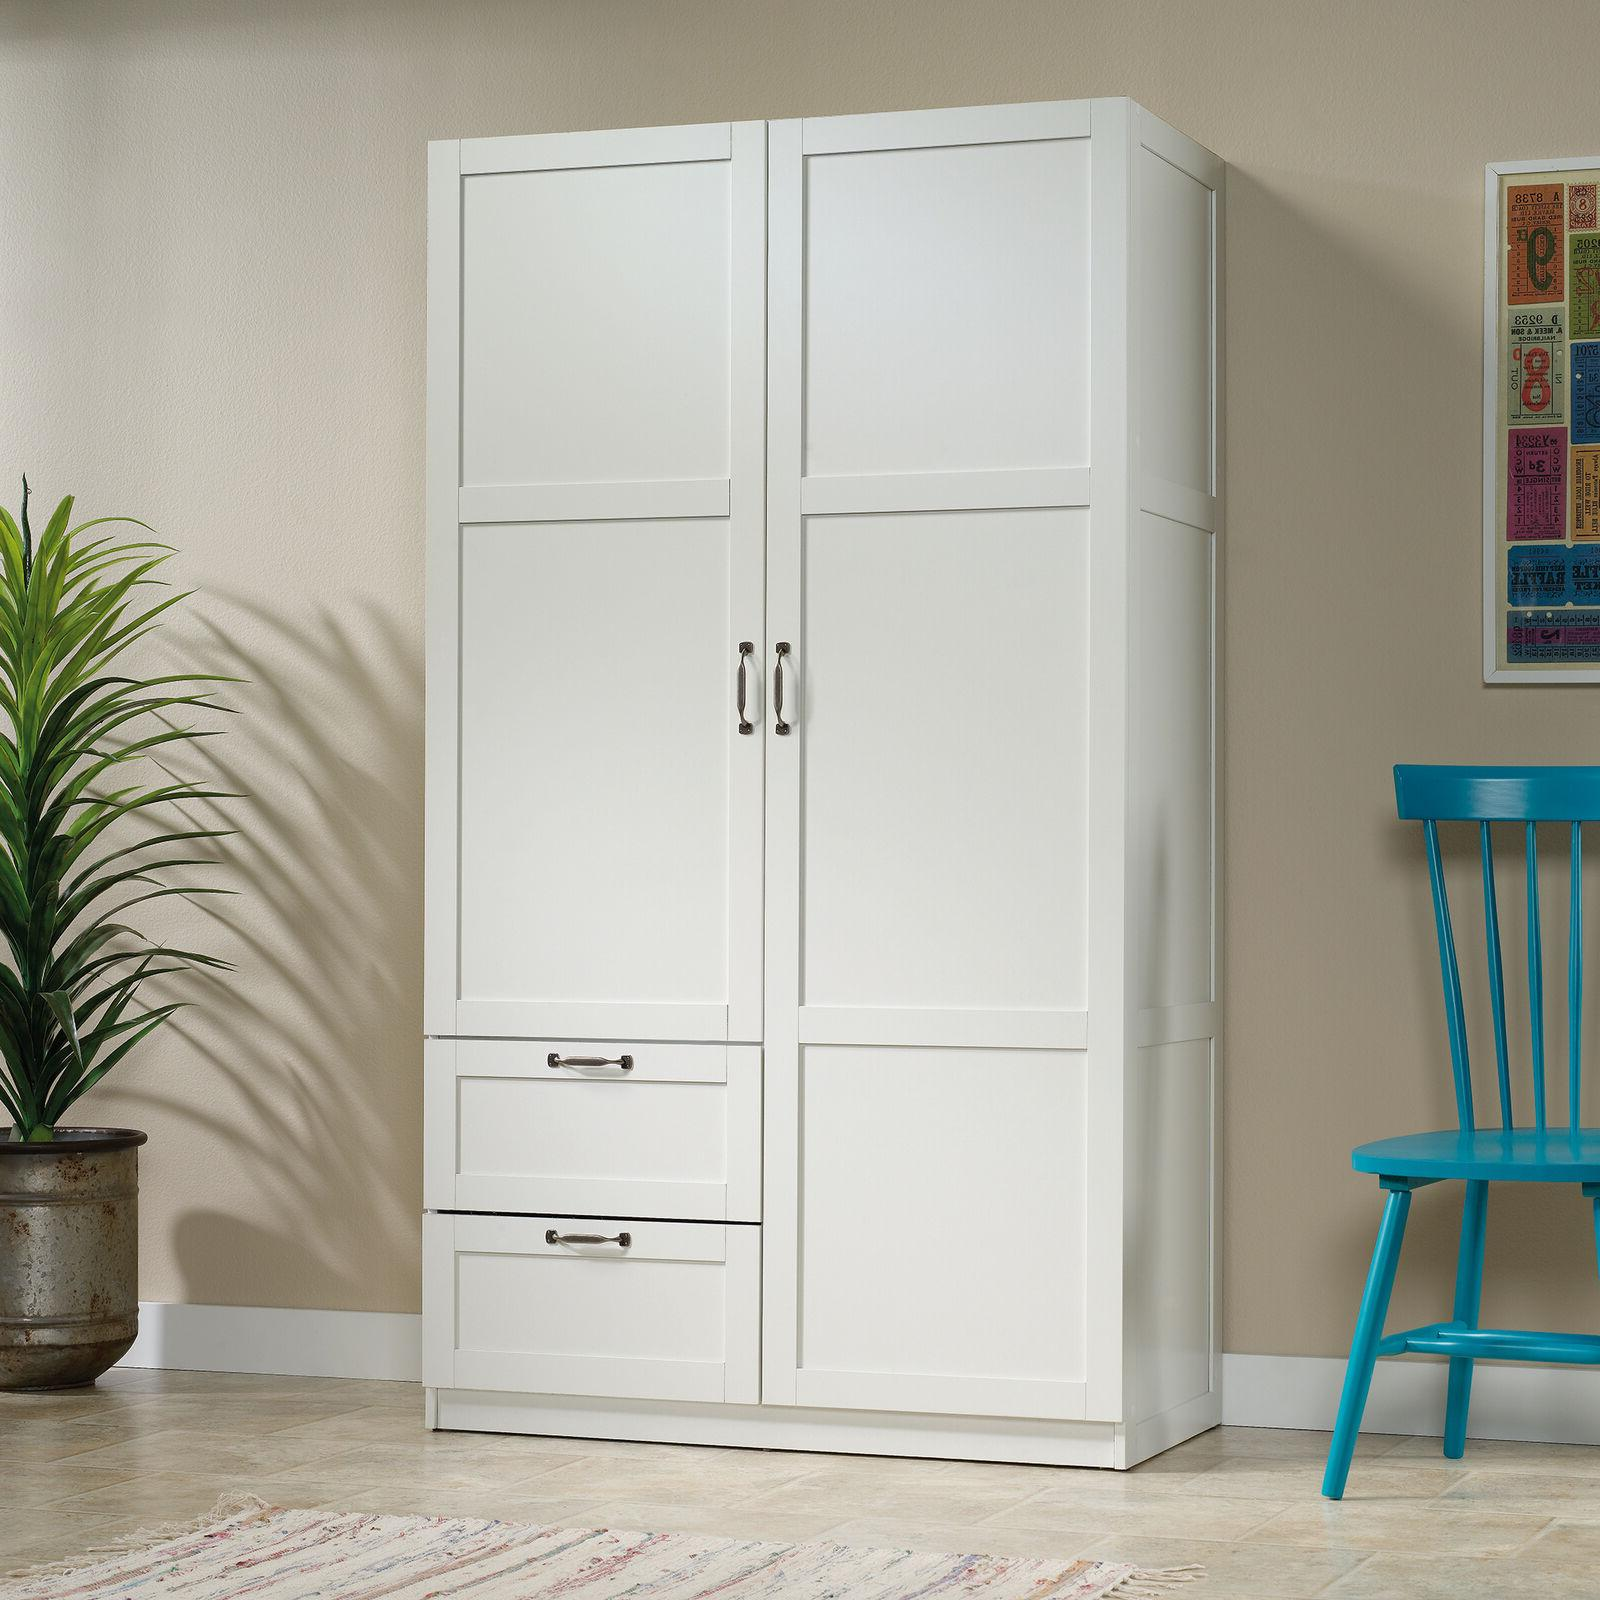 wardrobe armoire closet tall cabinet bedroom clothes